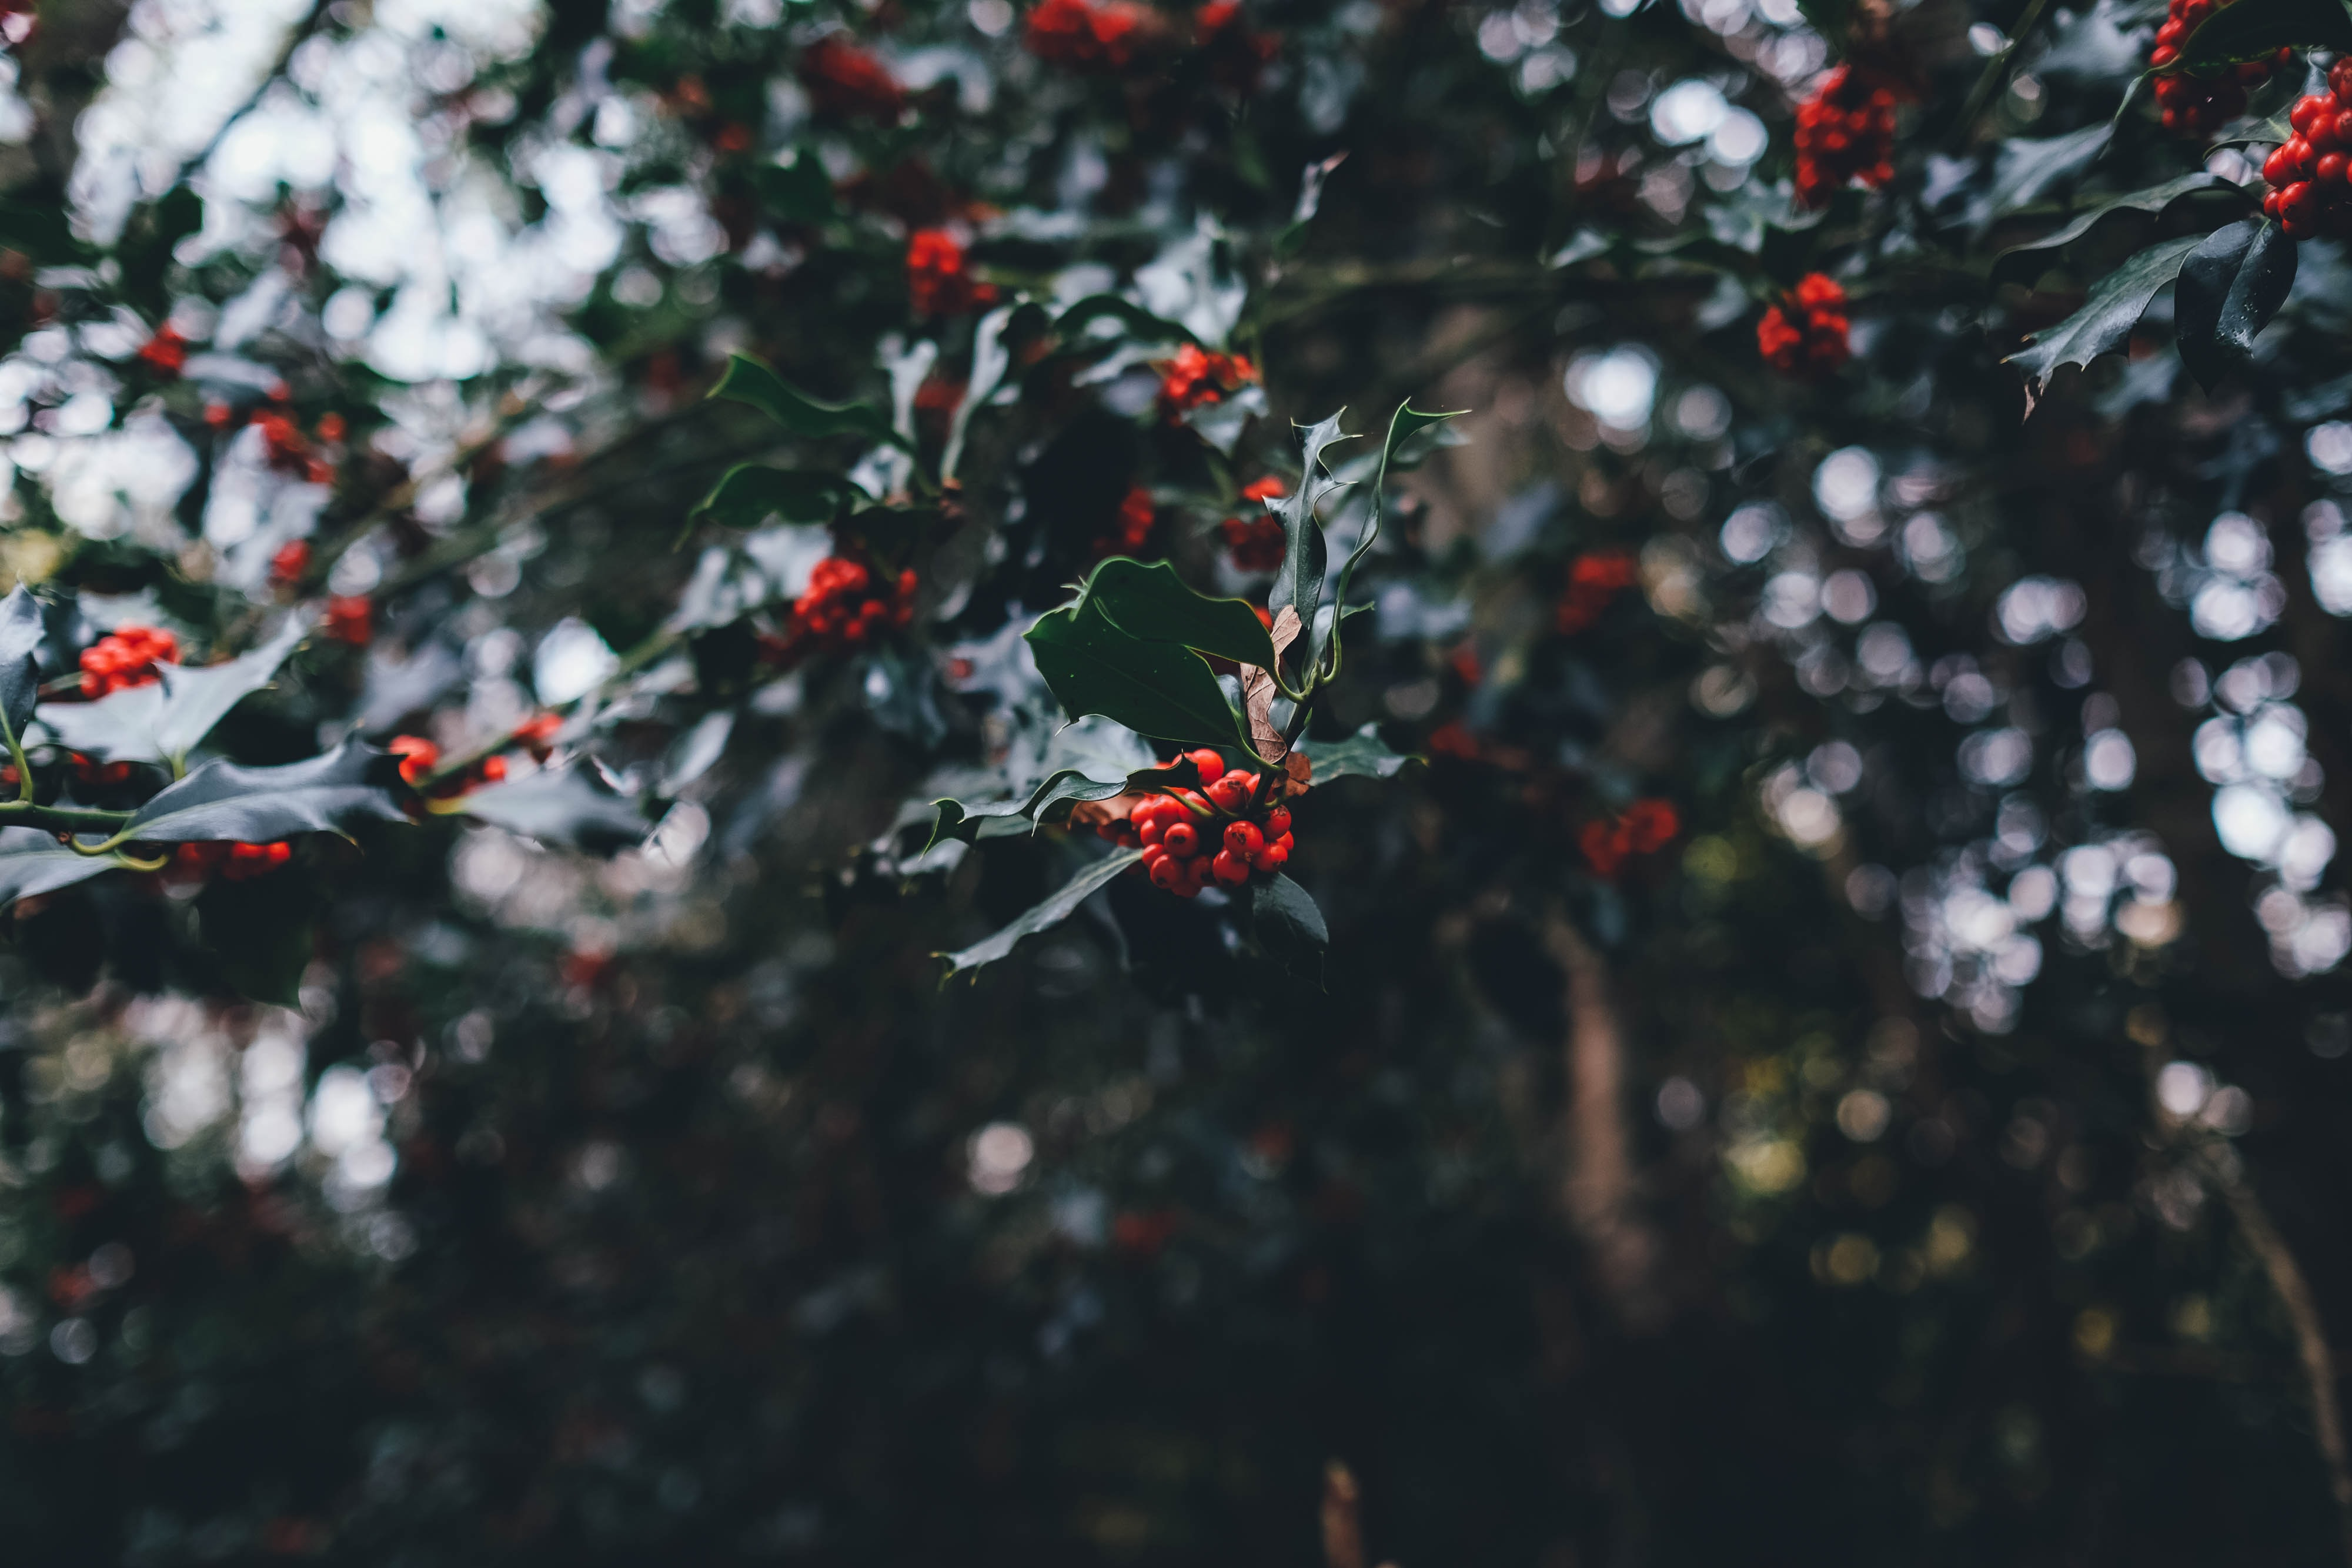 Clusters of holly berries and leaves on a tree